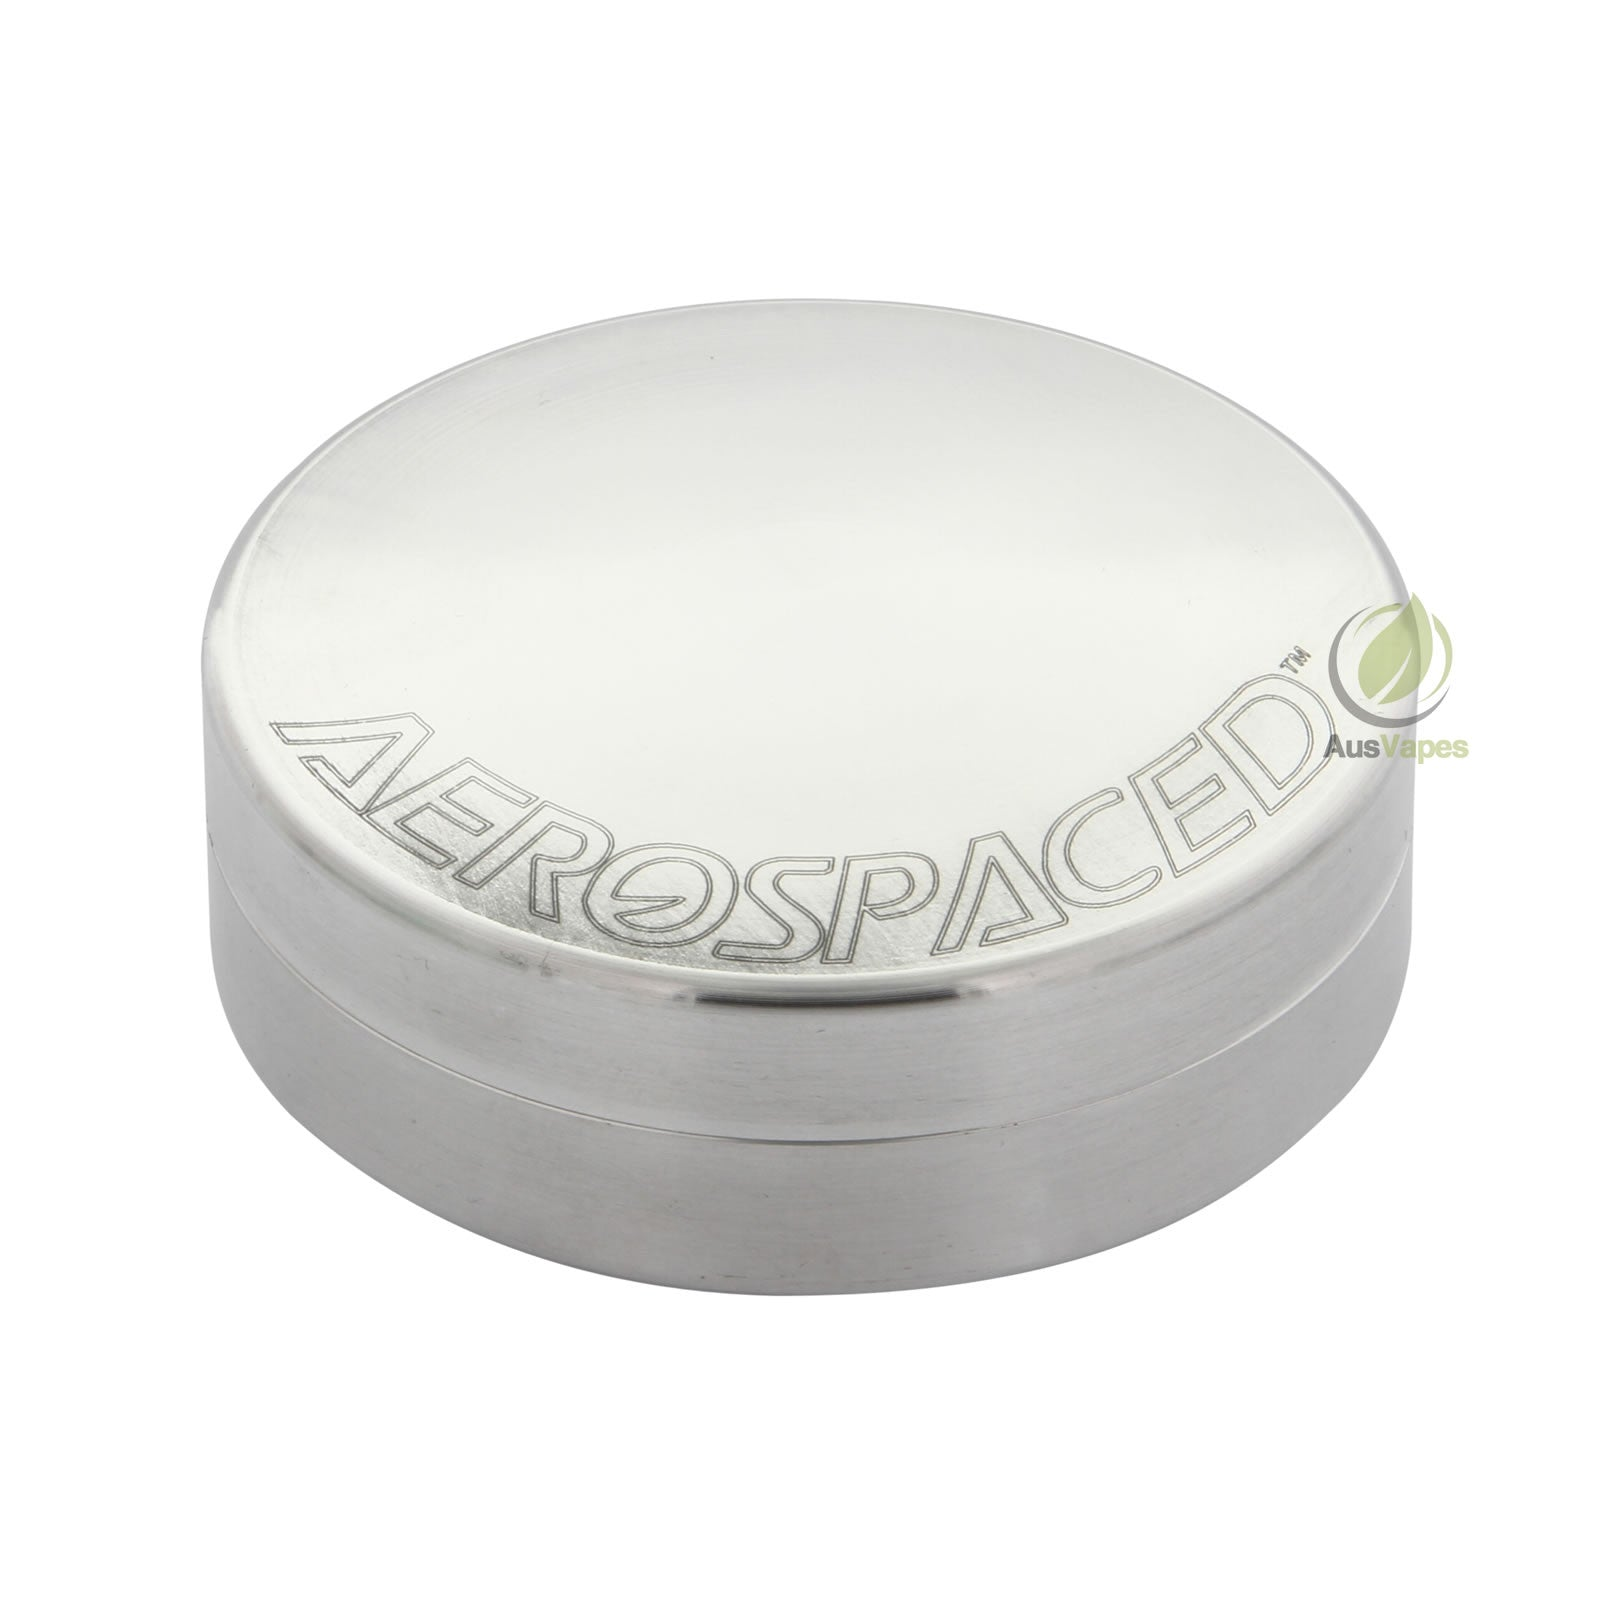 DISCONTINUED Aerospaced Medium Aluminium Stash Case 63mm -  Disc Shaped